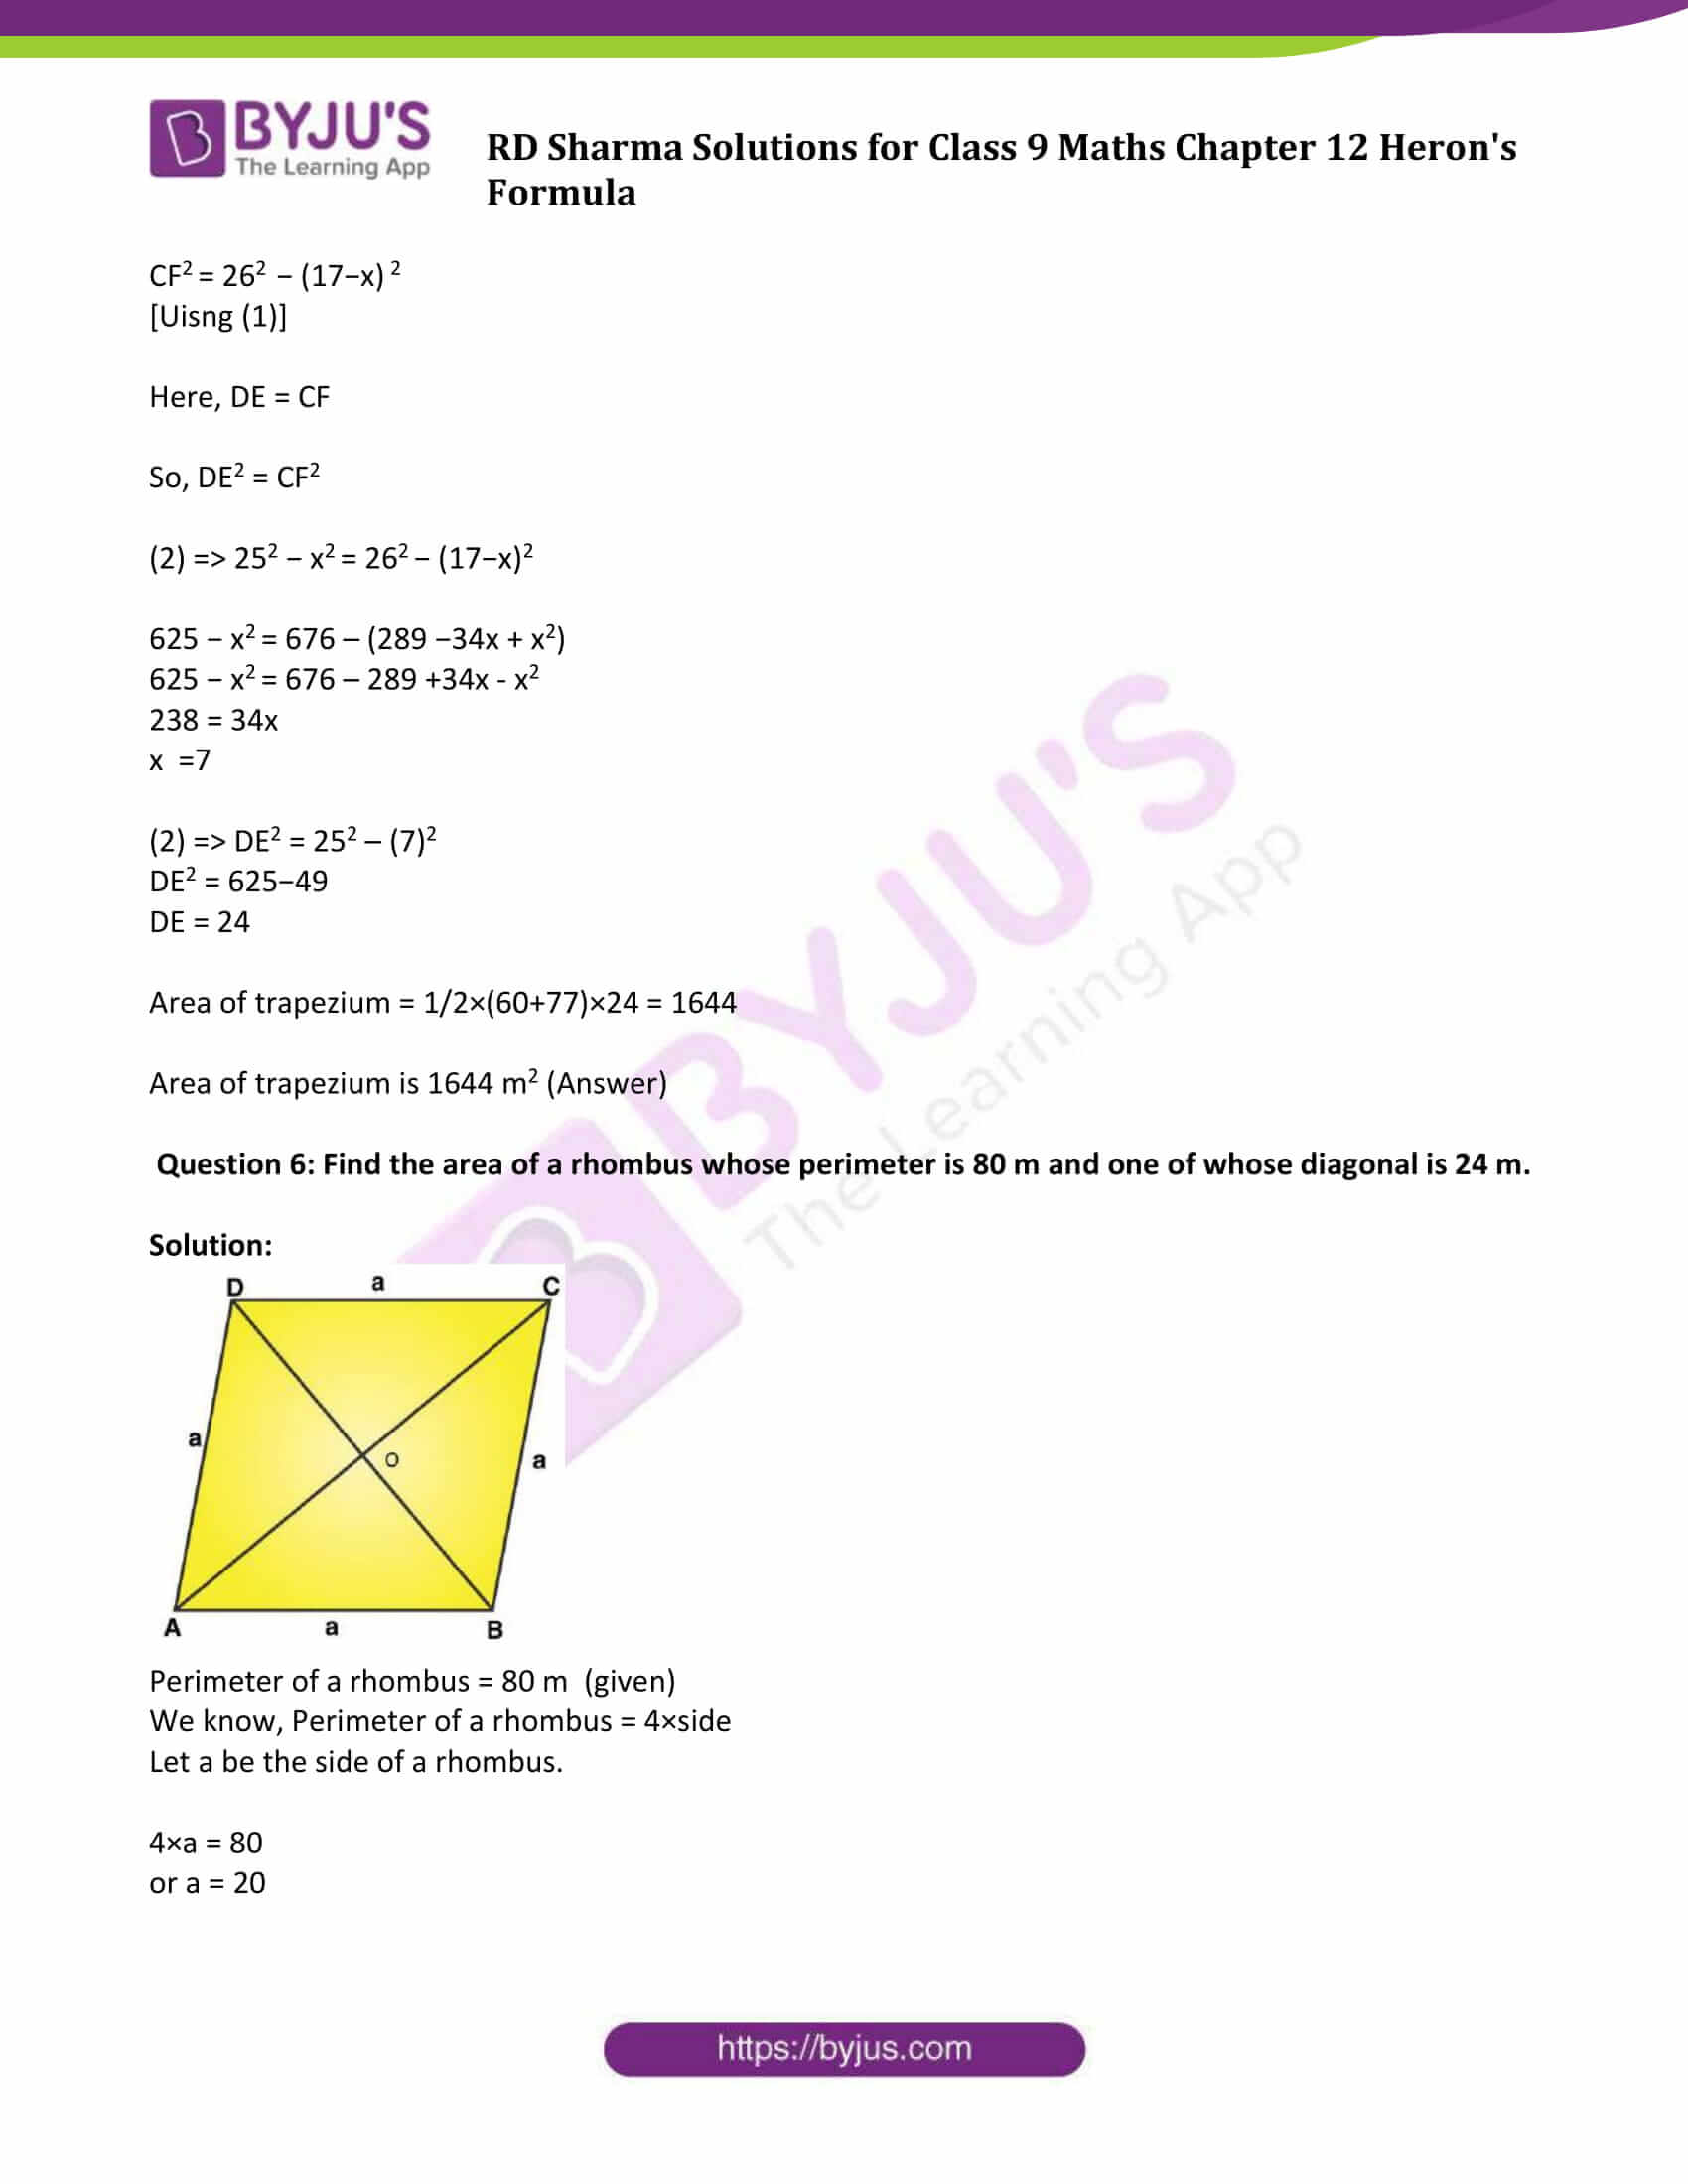 RD Sharma Solution Class 9 Maths Chapter 12 Herons Formula 15